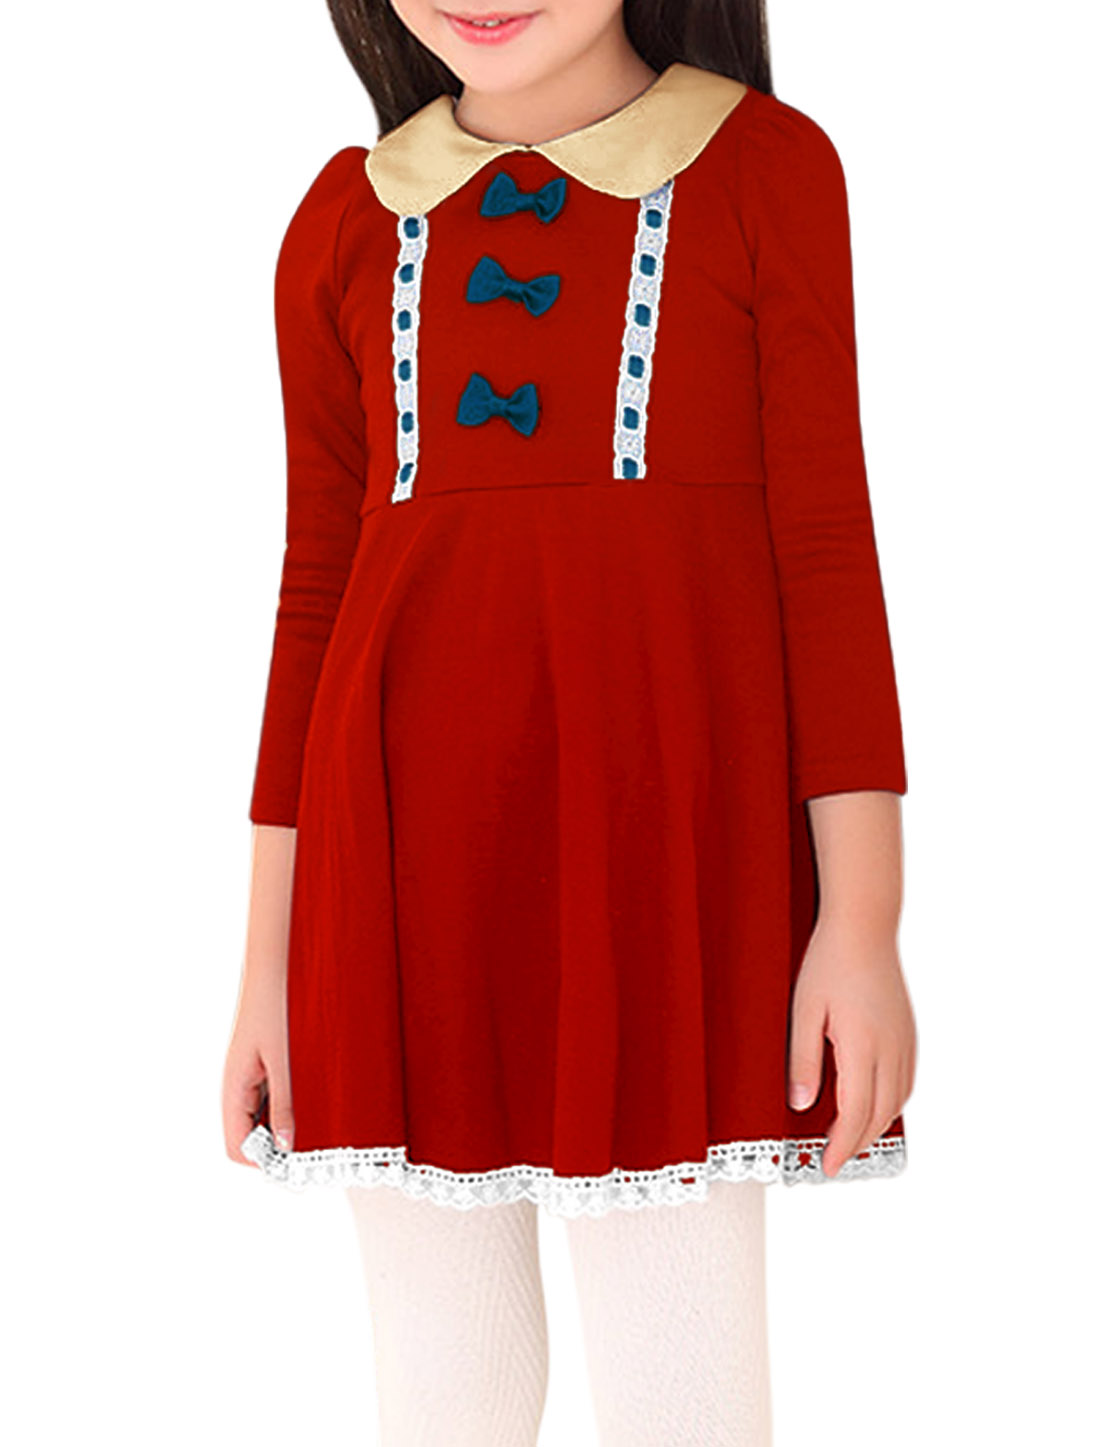 Girls Doll Collar Lace Panel Trim Casual Dress Red 10